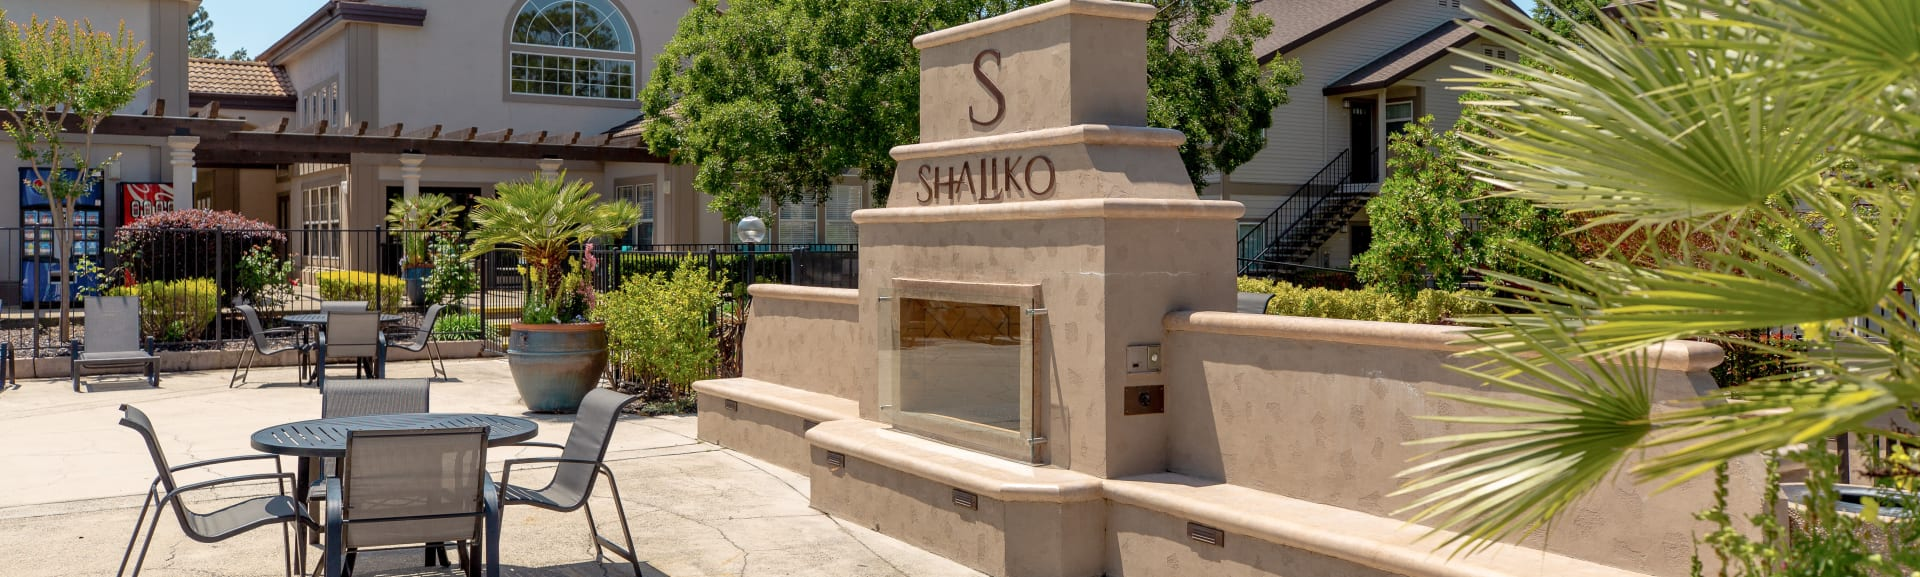 Learn about the exciting programs at Shaliko in Rocklin, California.